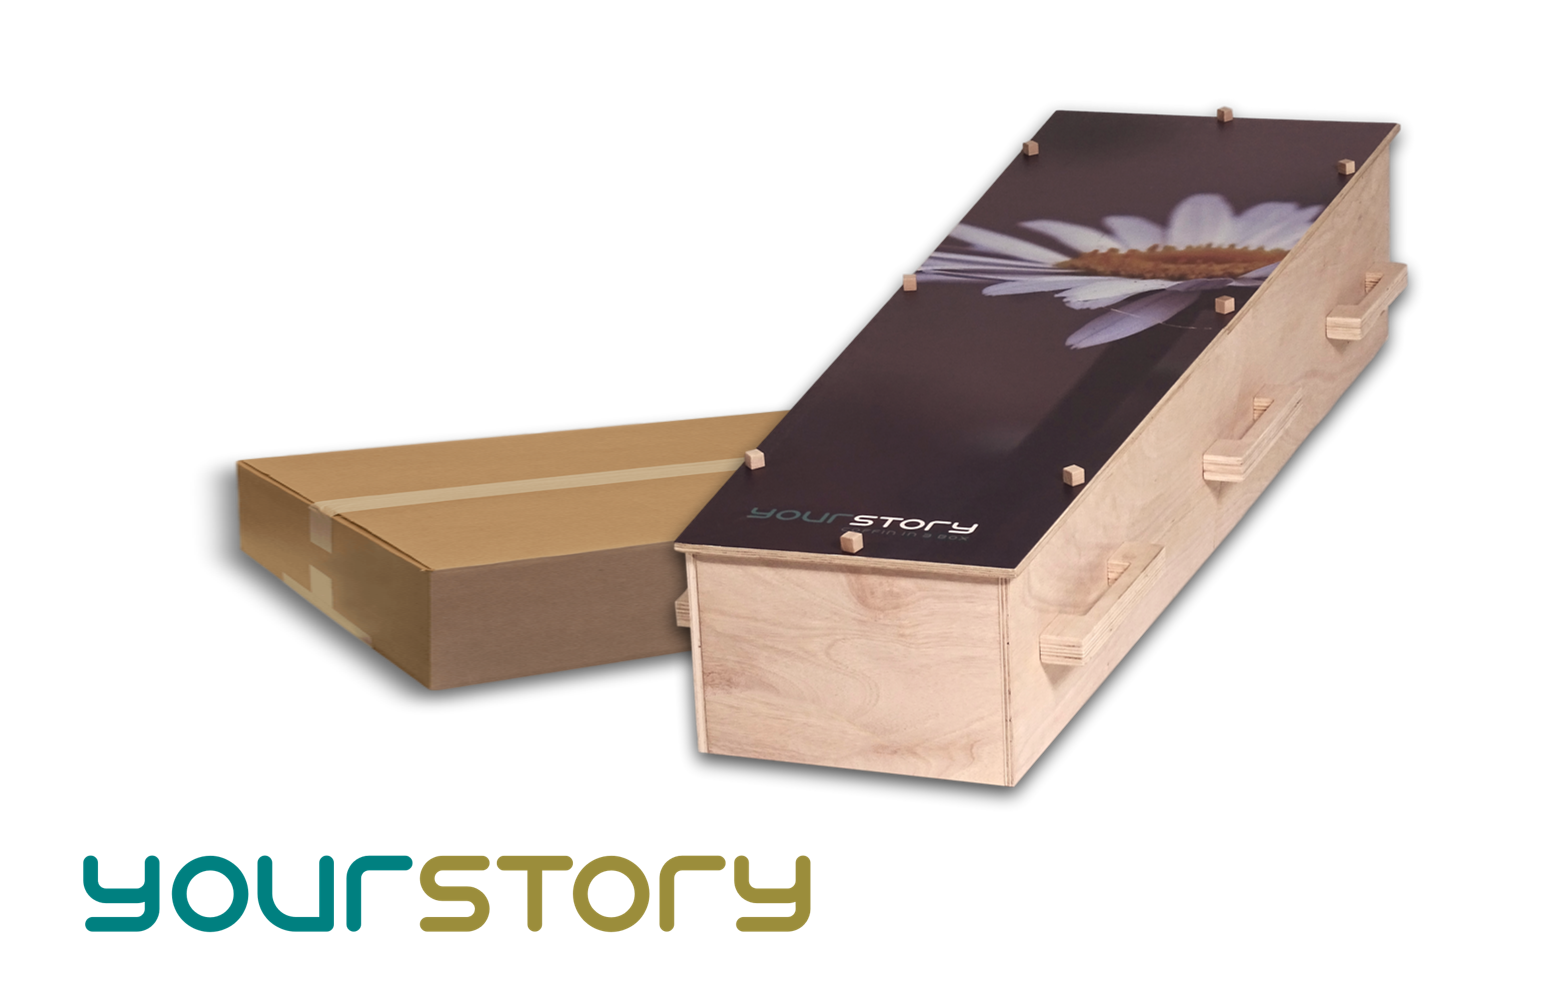 YOURSTORY personalised coffin photoprint